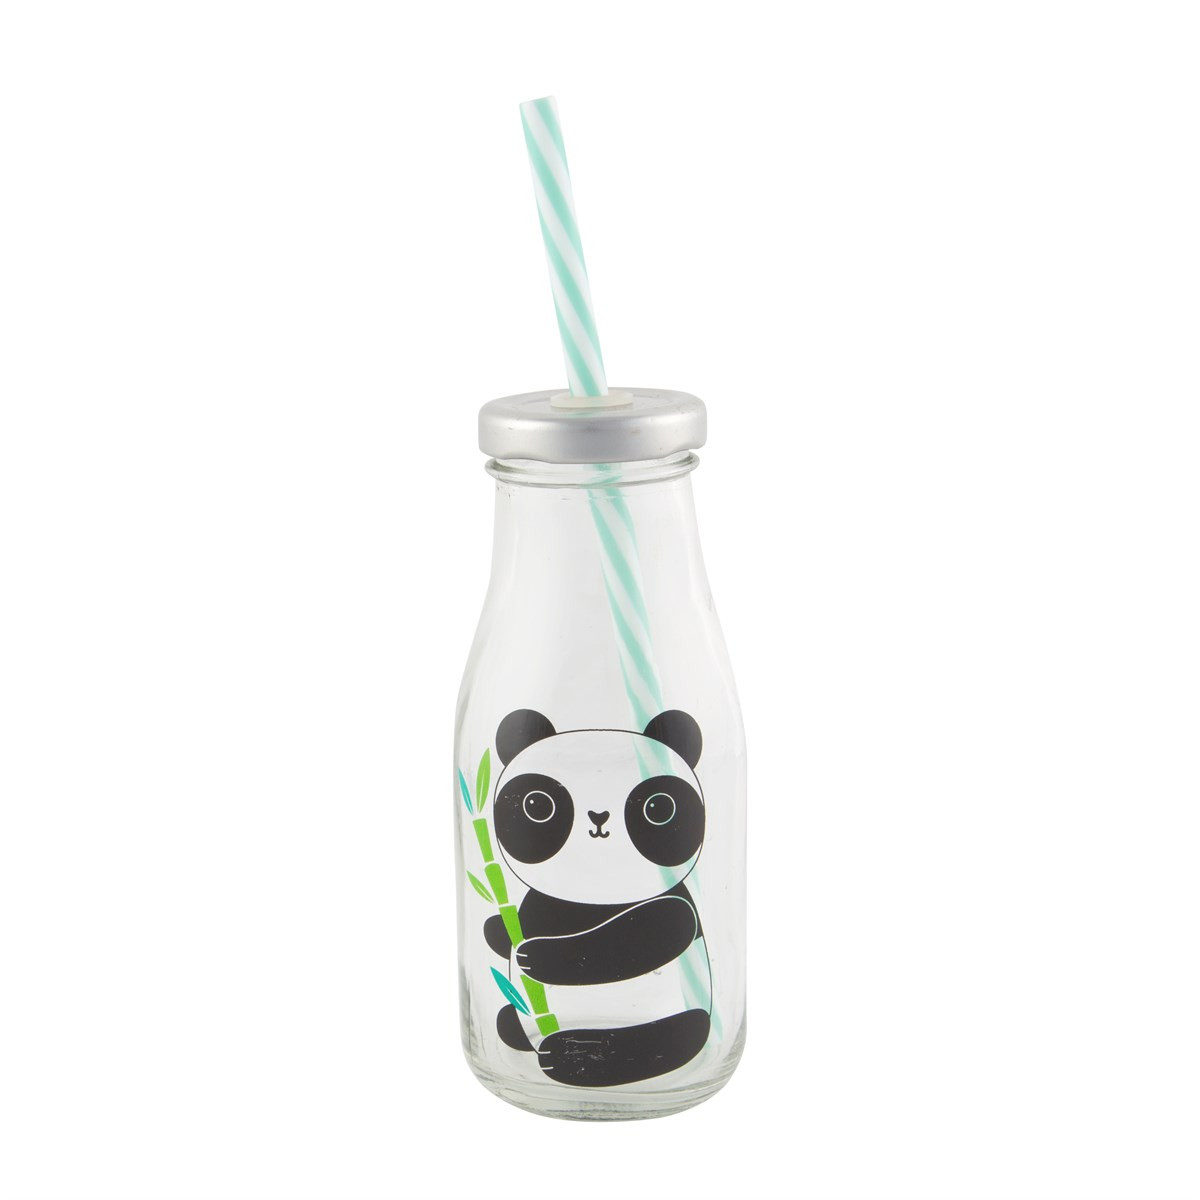 mini milk bottle vases of aiko panda mini milk bottle with straw within aiko panda mini milk bottle with straw default image